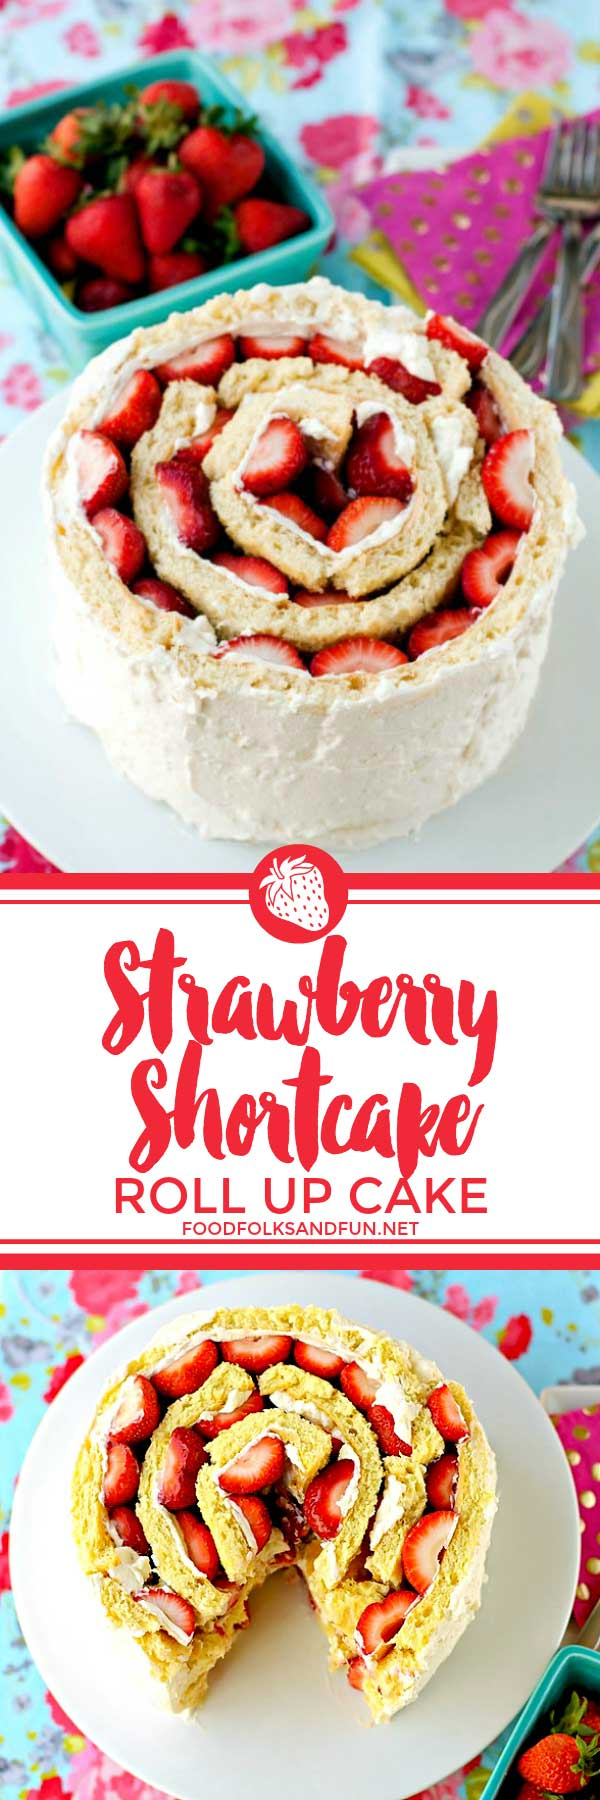 This Strawberry Shortcake Roll Up Cake has it all; tender white cake, whipped cream, fresh strawberries, and a show-stopping presence! It's just the cake for Spring and Summer holidays, birthdays, and BBQs. via @foodfolksandfun